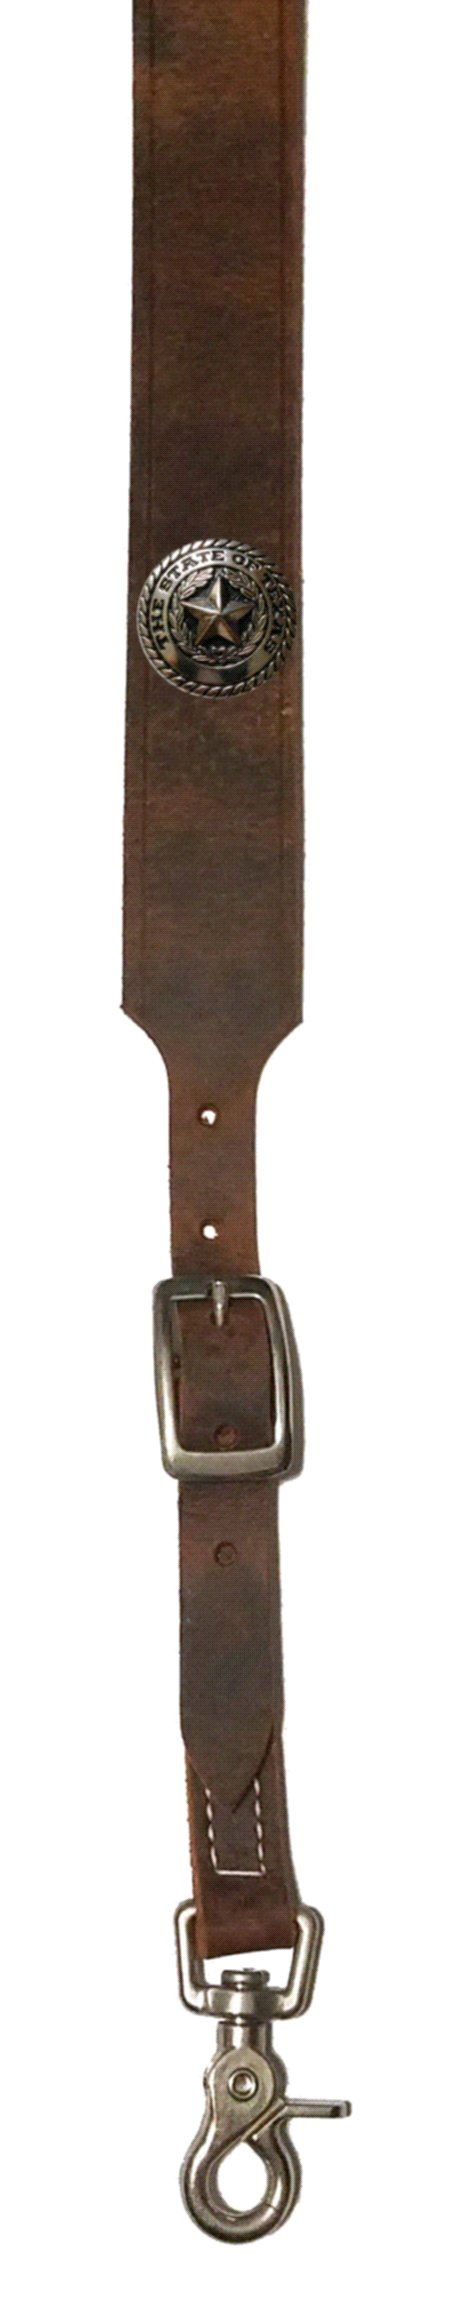 Custom Texas Silver Seal Leather suspenders in Bay Apache Brown. Made in the USA